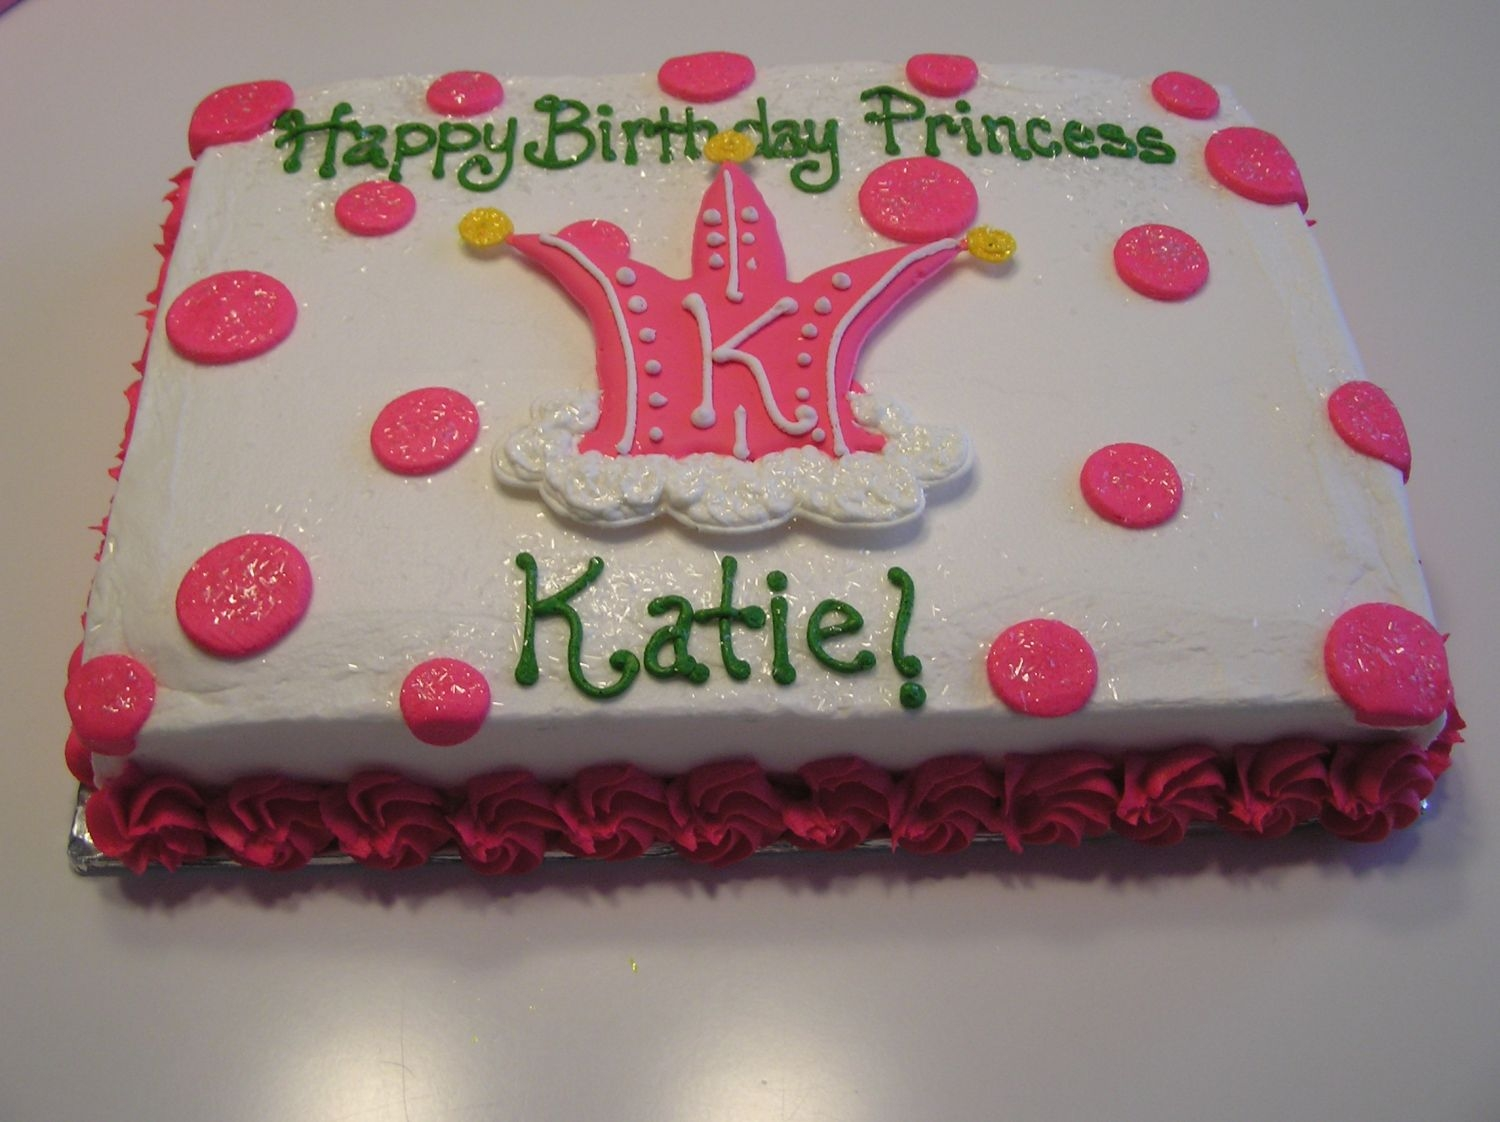 Princess Cake The crown on top is color flow, the rest is buttercream with a cute rosette bottom border.